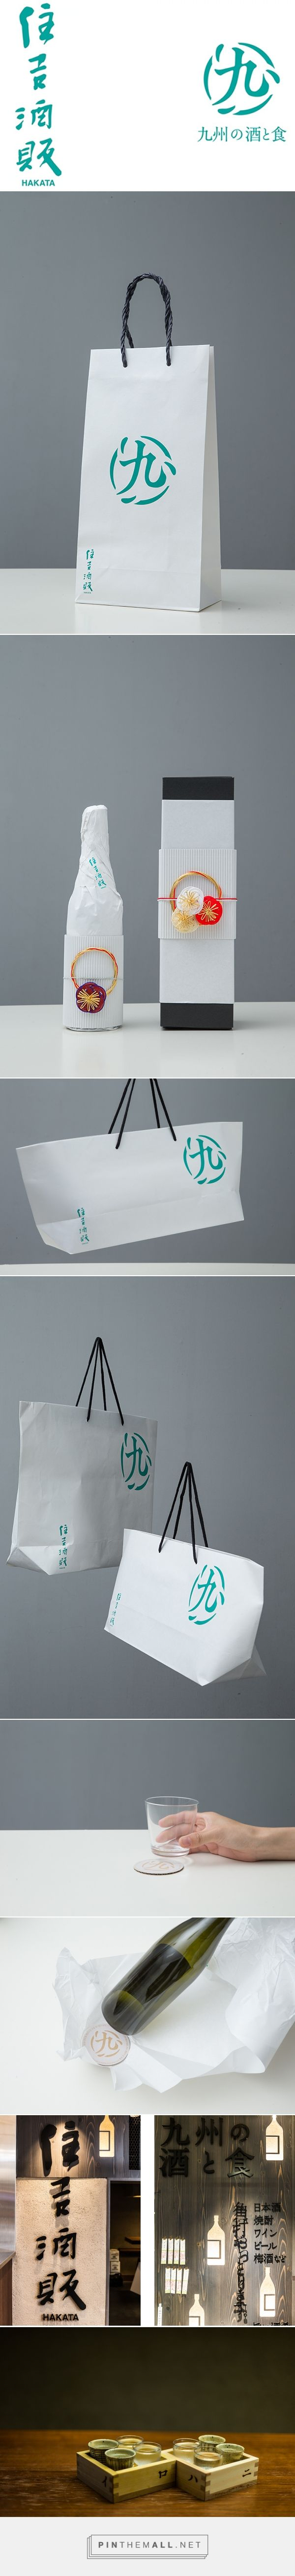 テツシンデザインオフィス  :  住吉酒販 curated by Packaging Diva PD. Hakata beautiful packaging